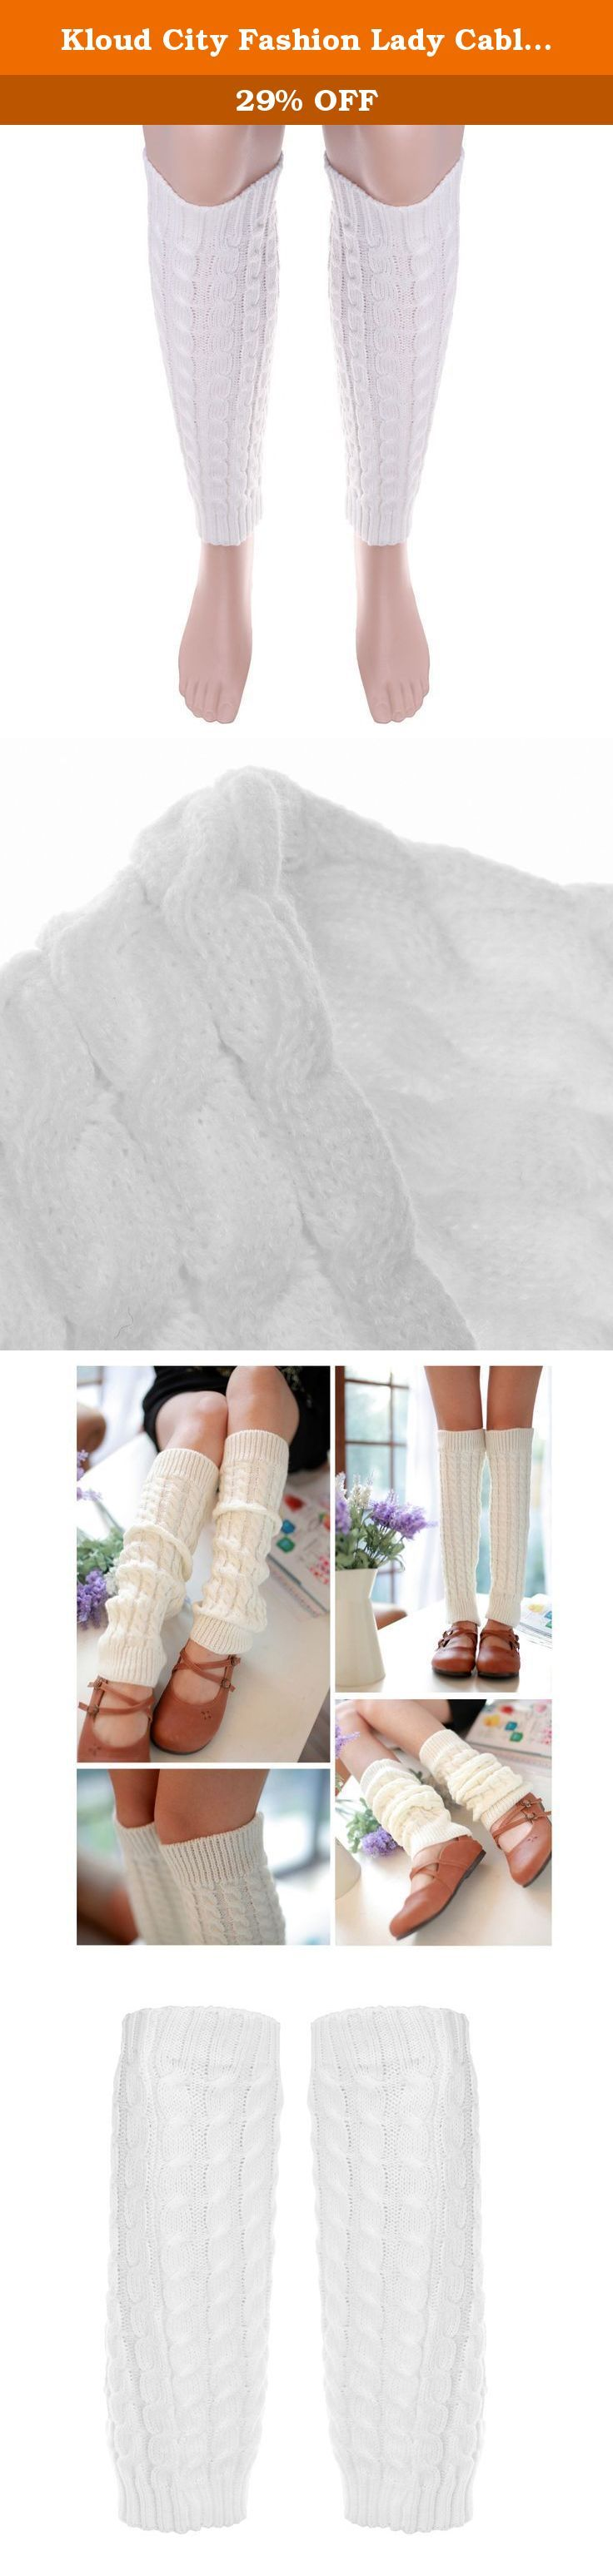 """Kloud City Fashion Lady Cable Knit Dance Leg Warmer Knee High Crochet Boot Cuff. Leg warmers are versatile and can be pulled down for a scrunched sock look Unstretched specification: 16"""" (L)X3"""" (W), soft and elastic, It's very warm and the design is keep up with the fashion Perfect accessory for the winter season when you go outside Ideal for cold weather to keep your legs warm at home at the gym or at winter sports Great to pair with tights, jeans, pumps, flats or boots, especially for..."""